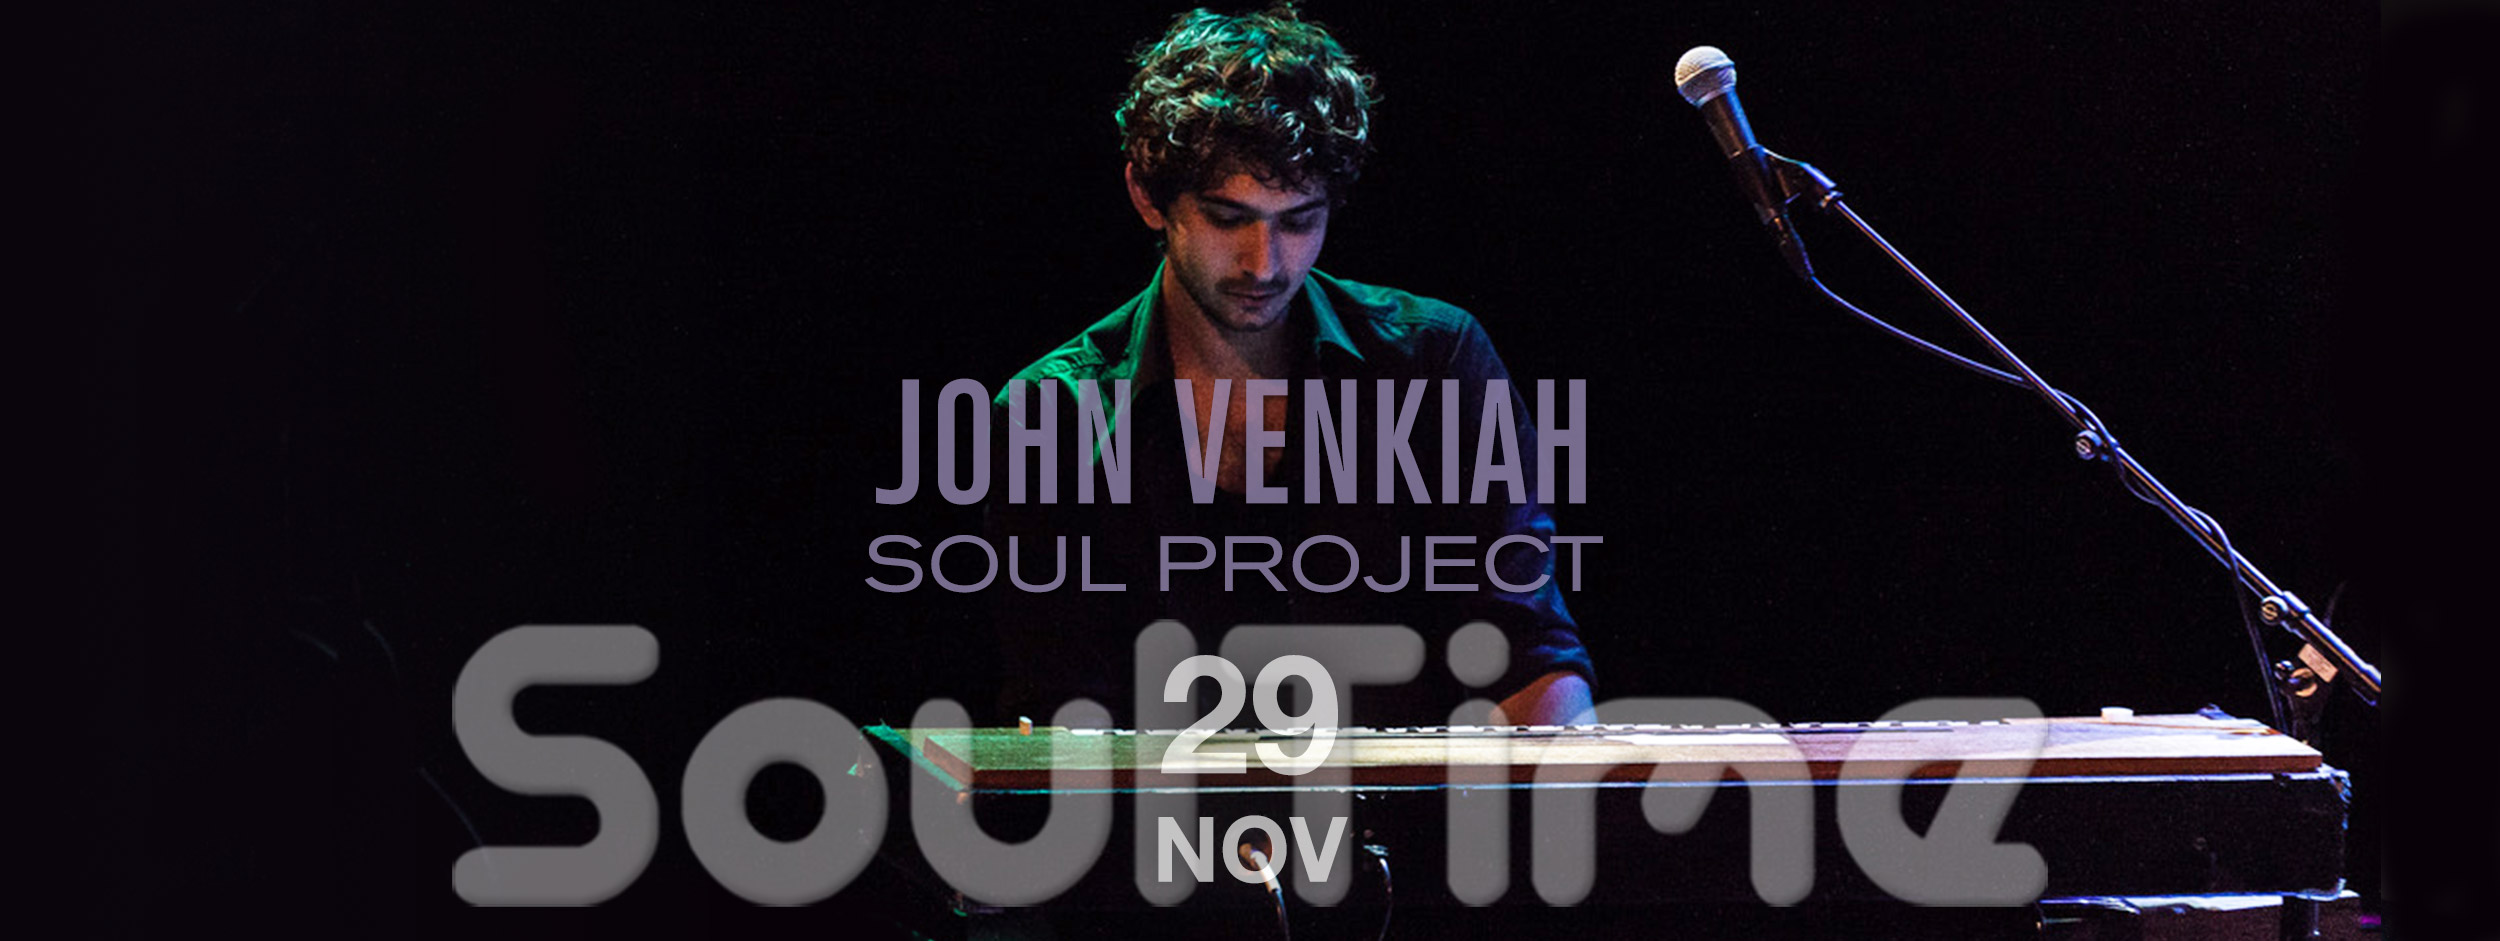 johnvenkiah november 2017b